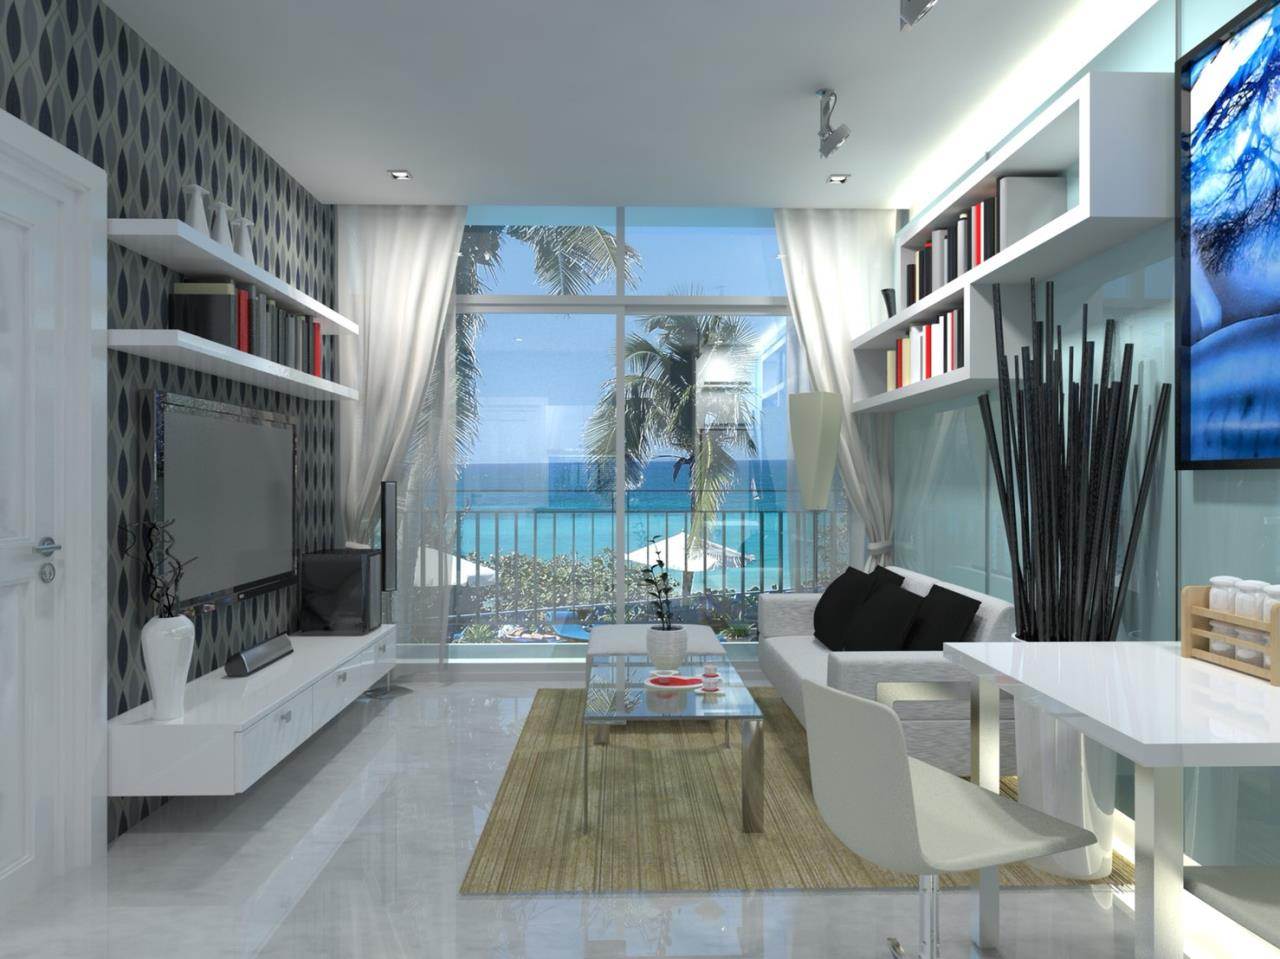 Signature Realty ( Thailand ) Co Ltd Agency's Furnished 2bedroom 65.75 sq.m condo with jacuzzi floor 2-11 at The Grand Jomtein Beach Pattaya 1